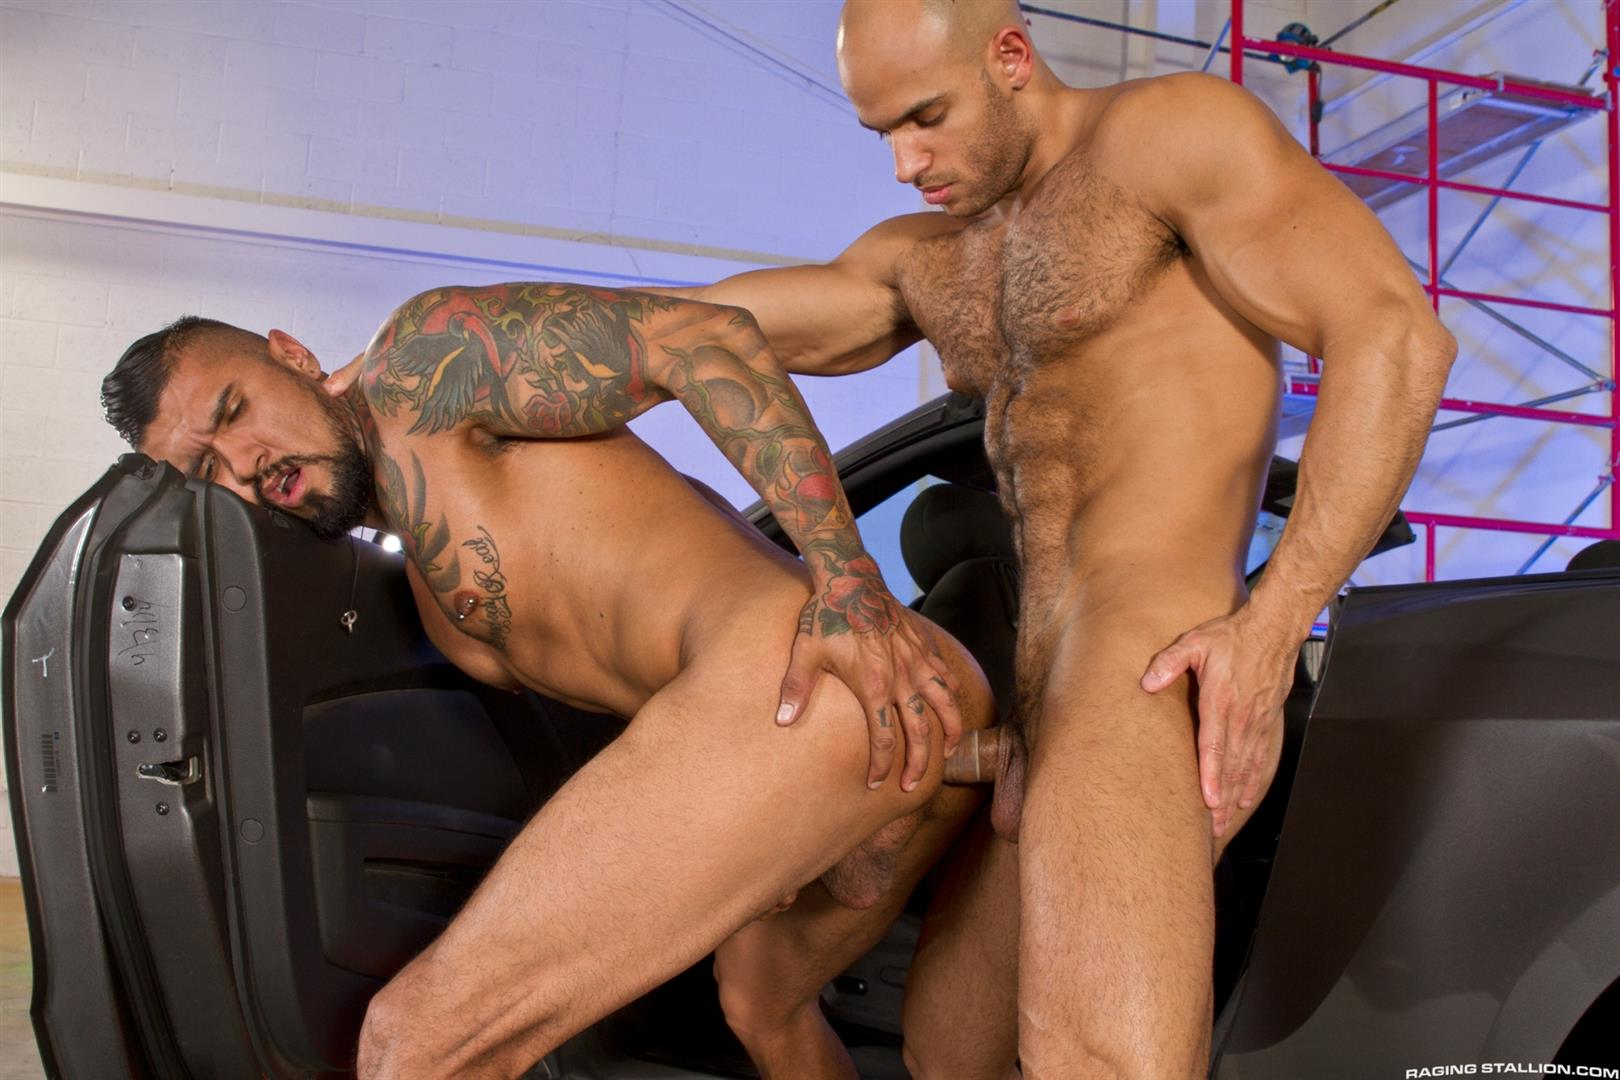 Raging Stallion Sean Zevran and Boomer Banks Bottoms For The First Time Big Uncut Cock Amateur Gay Porn 09